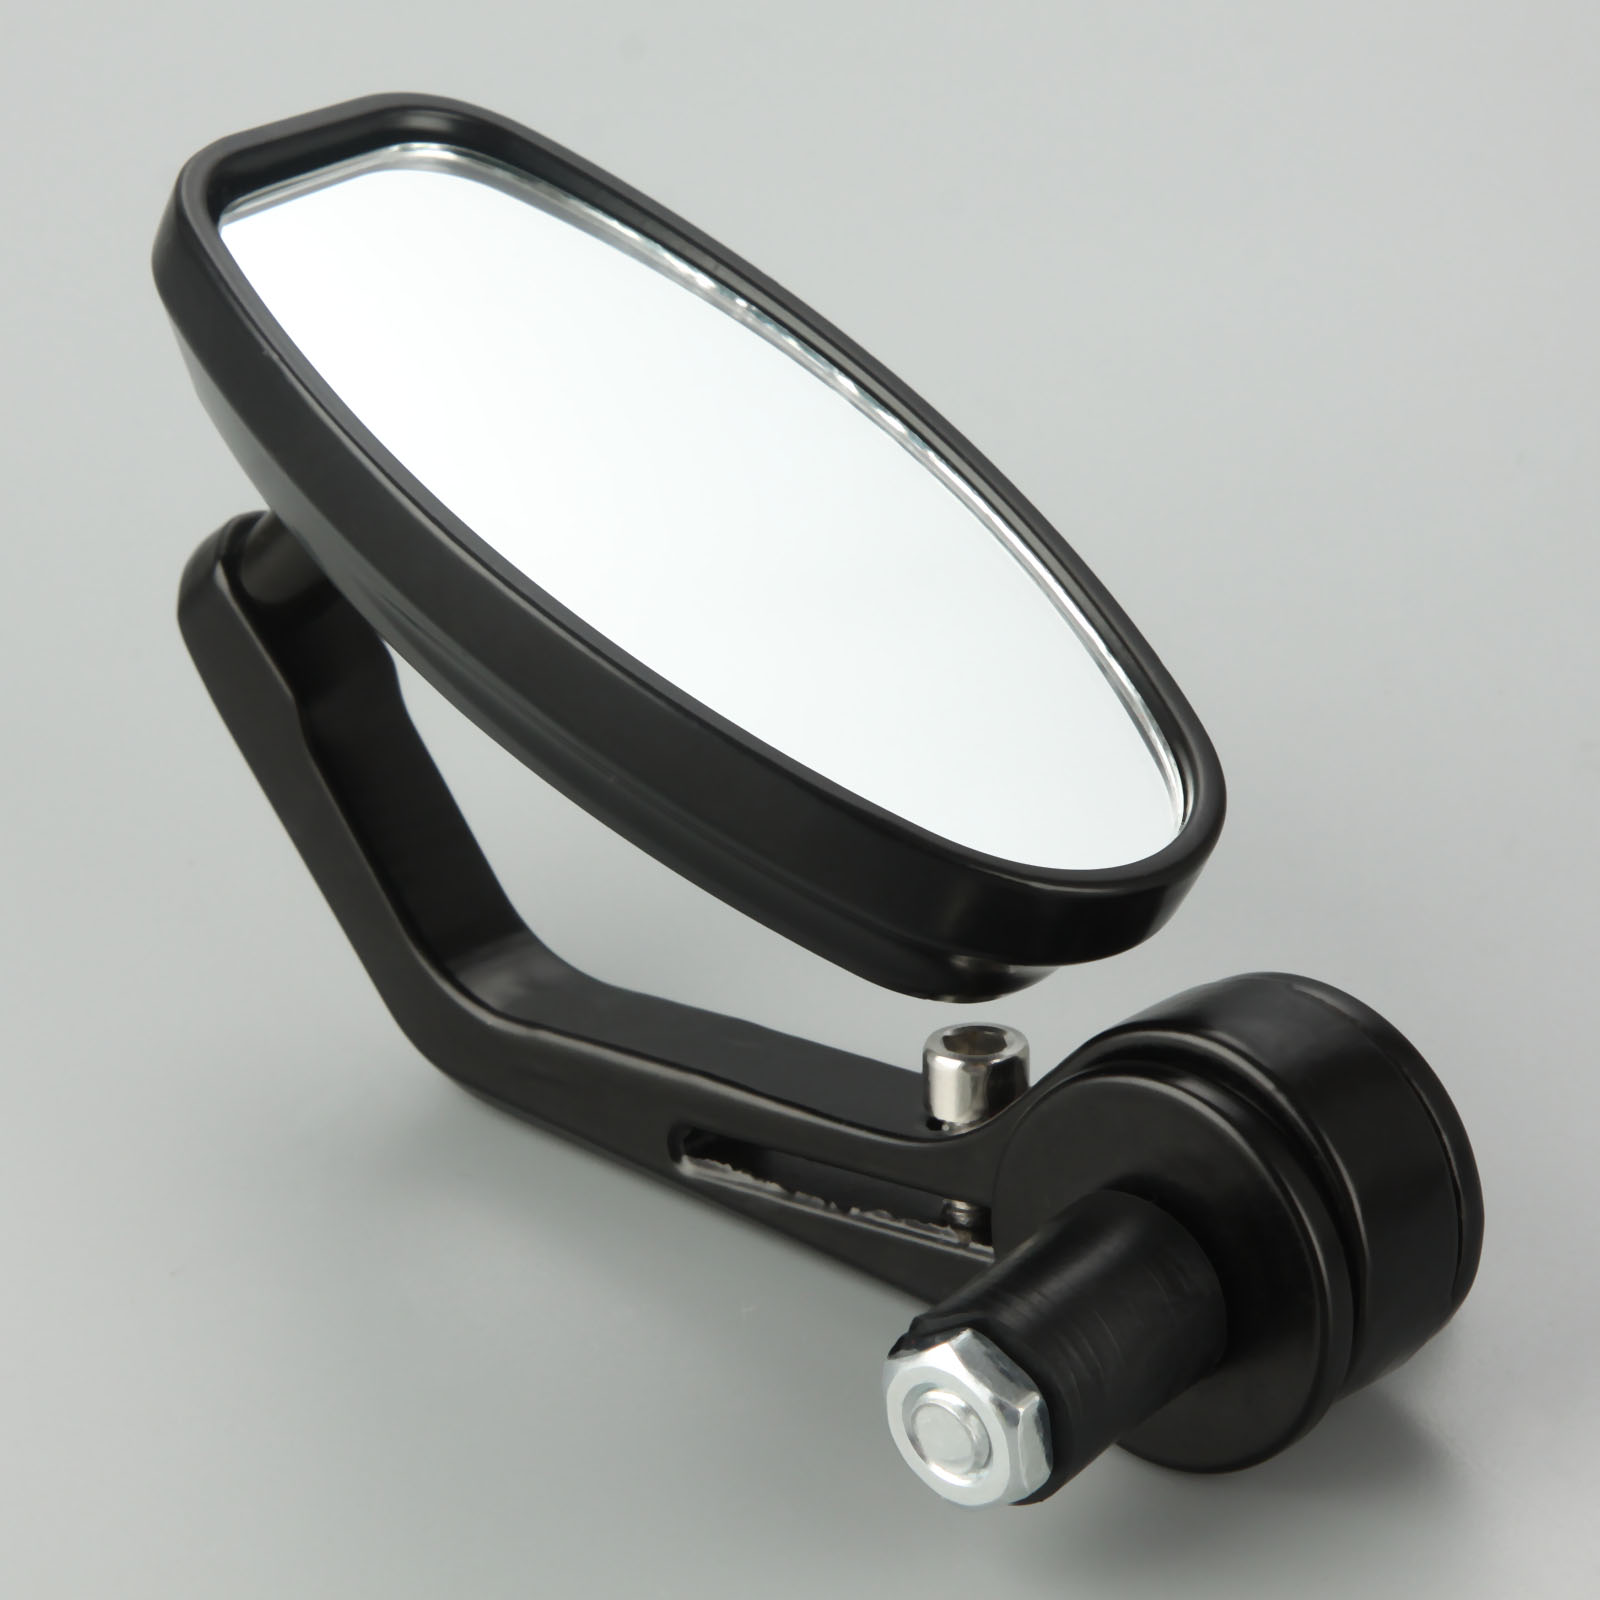 "Image 3 - Motorcycle Rear View Mirrors 7/8"" CNC Aluminum Motorbike Rearview Mirror Cafe Racer For 22mm Handlebar Motorcycle-in Side Mirrors & Accessories from Automobiles & Motorcycles"